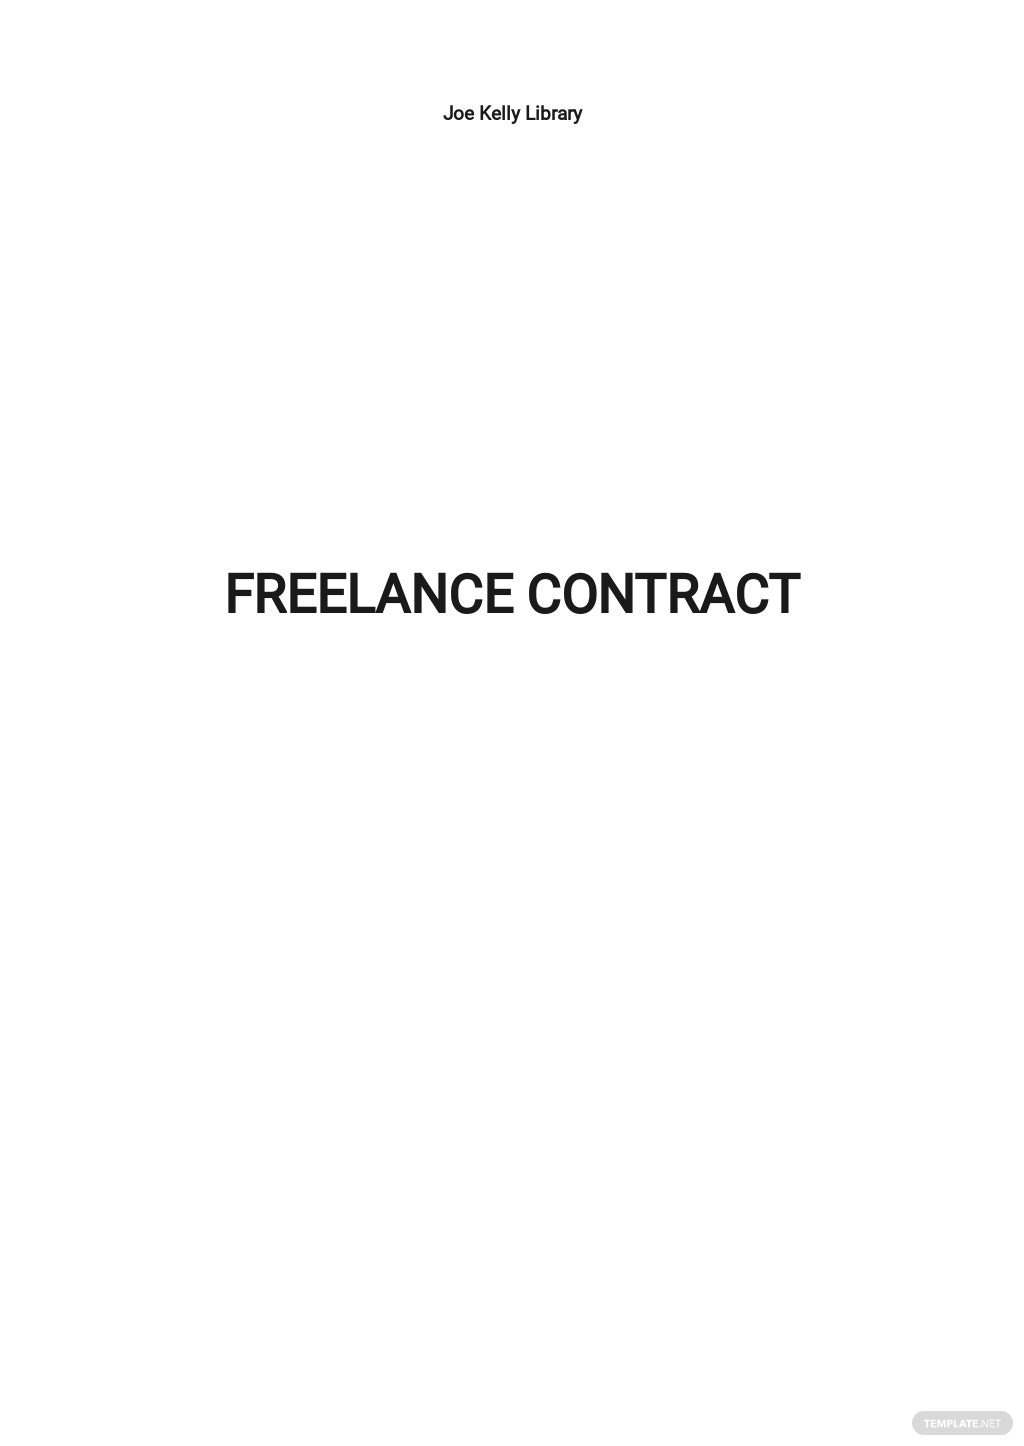 Free Simple Freelance Contract Template.jpe